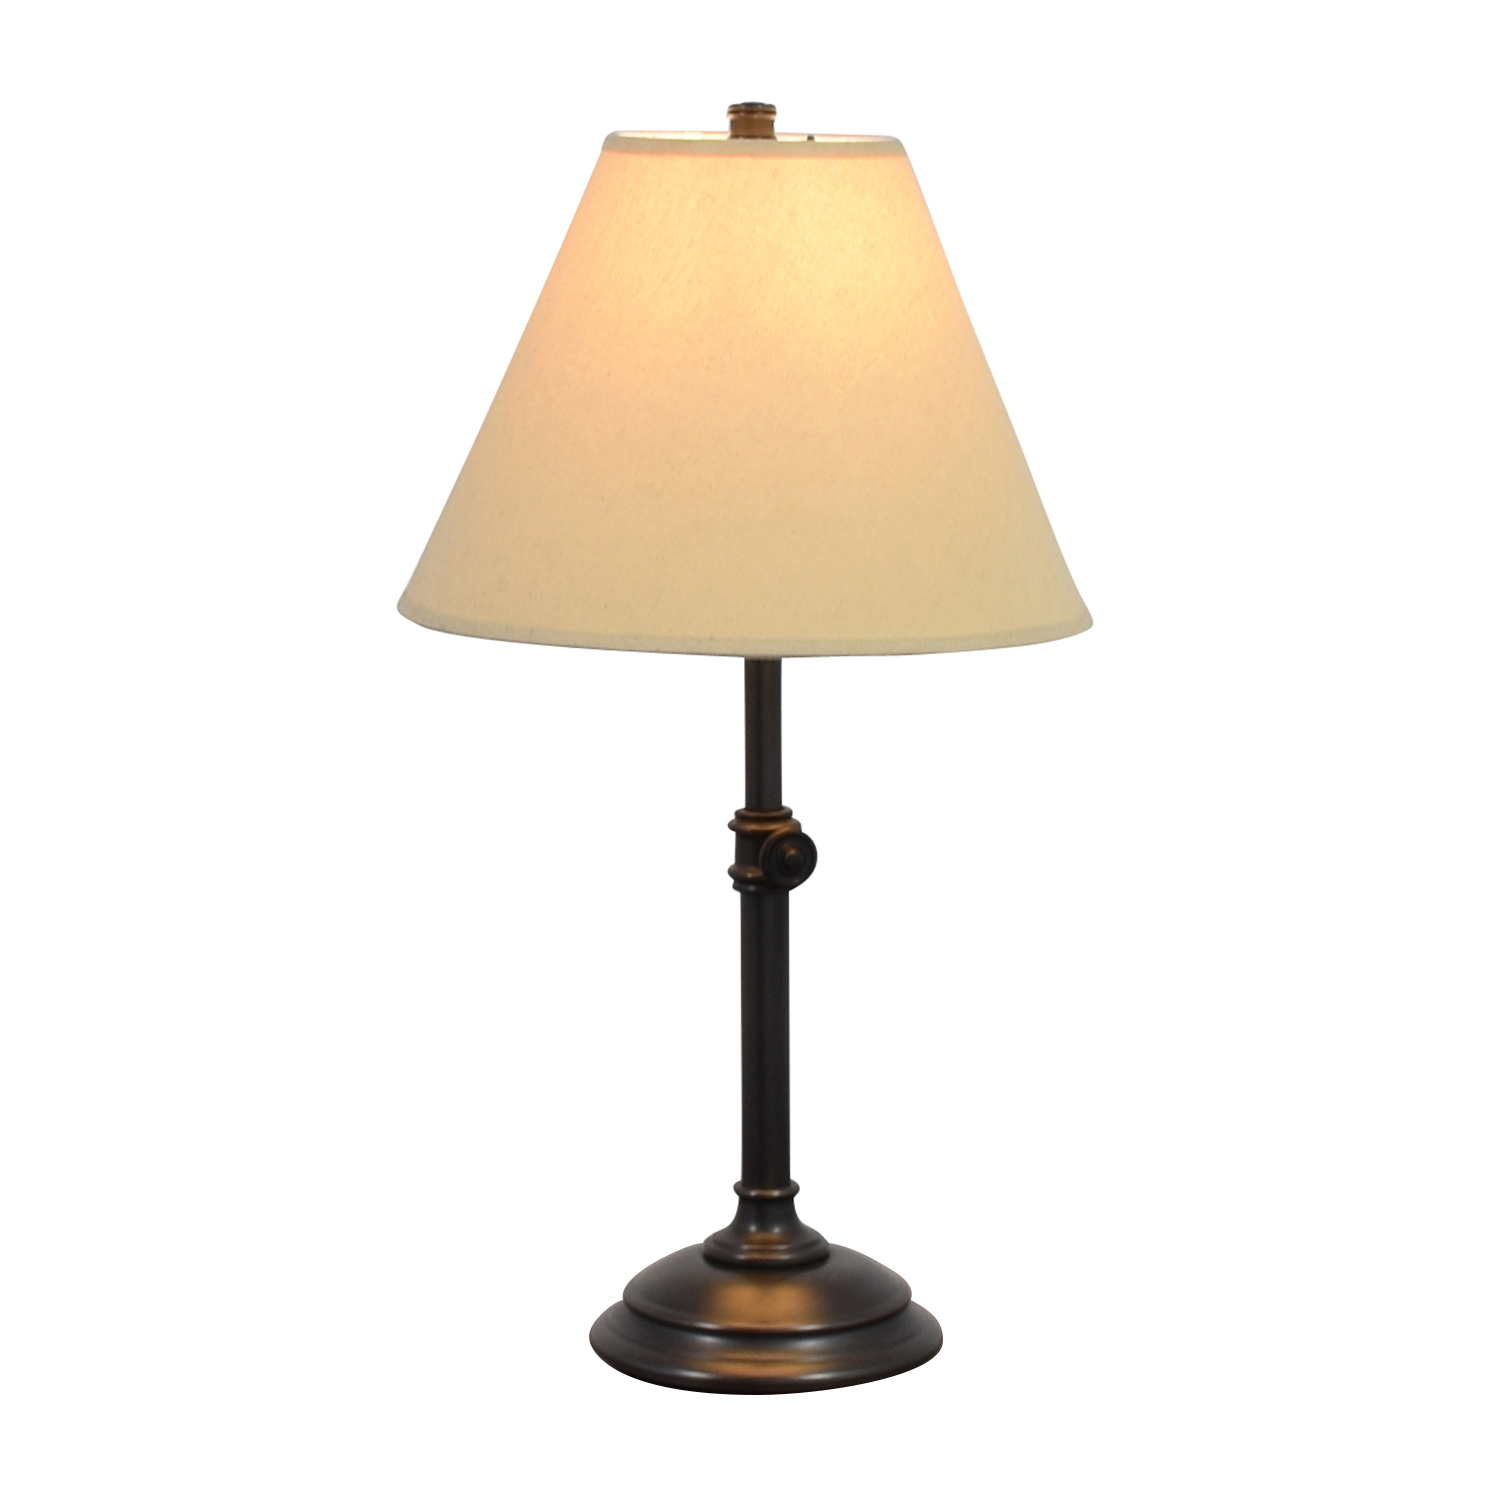 buy Pottery Barn Desk Lamp Pottery Barn